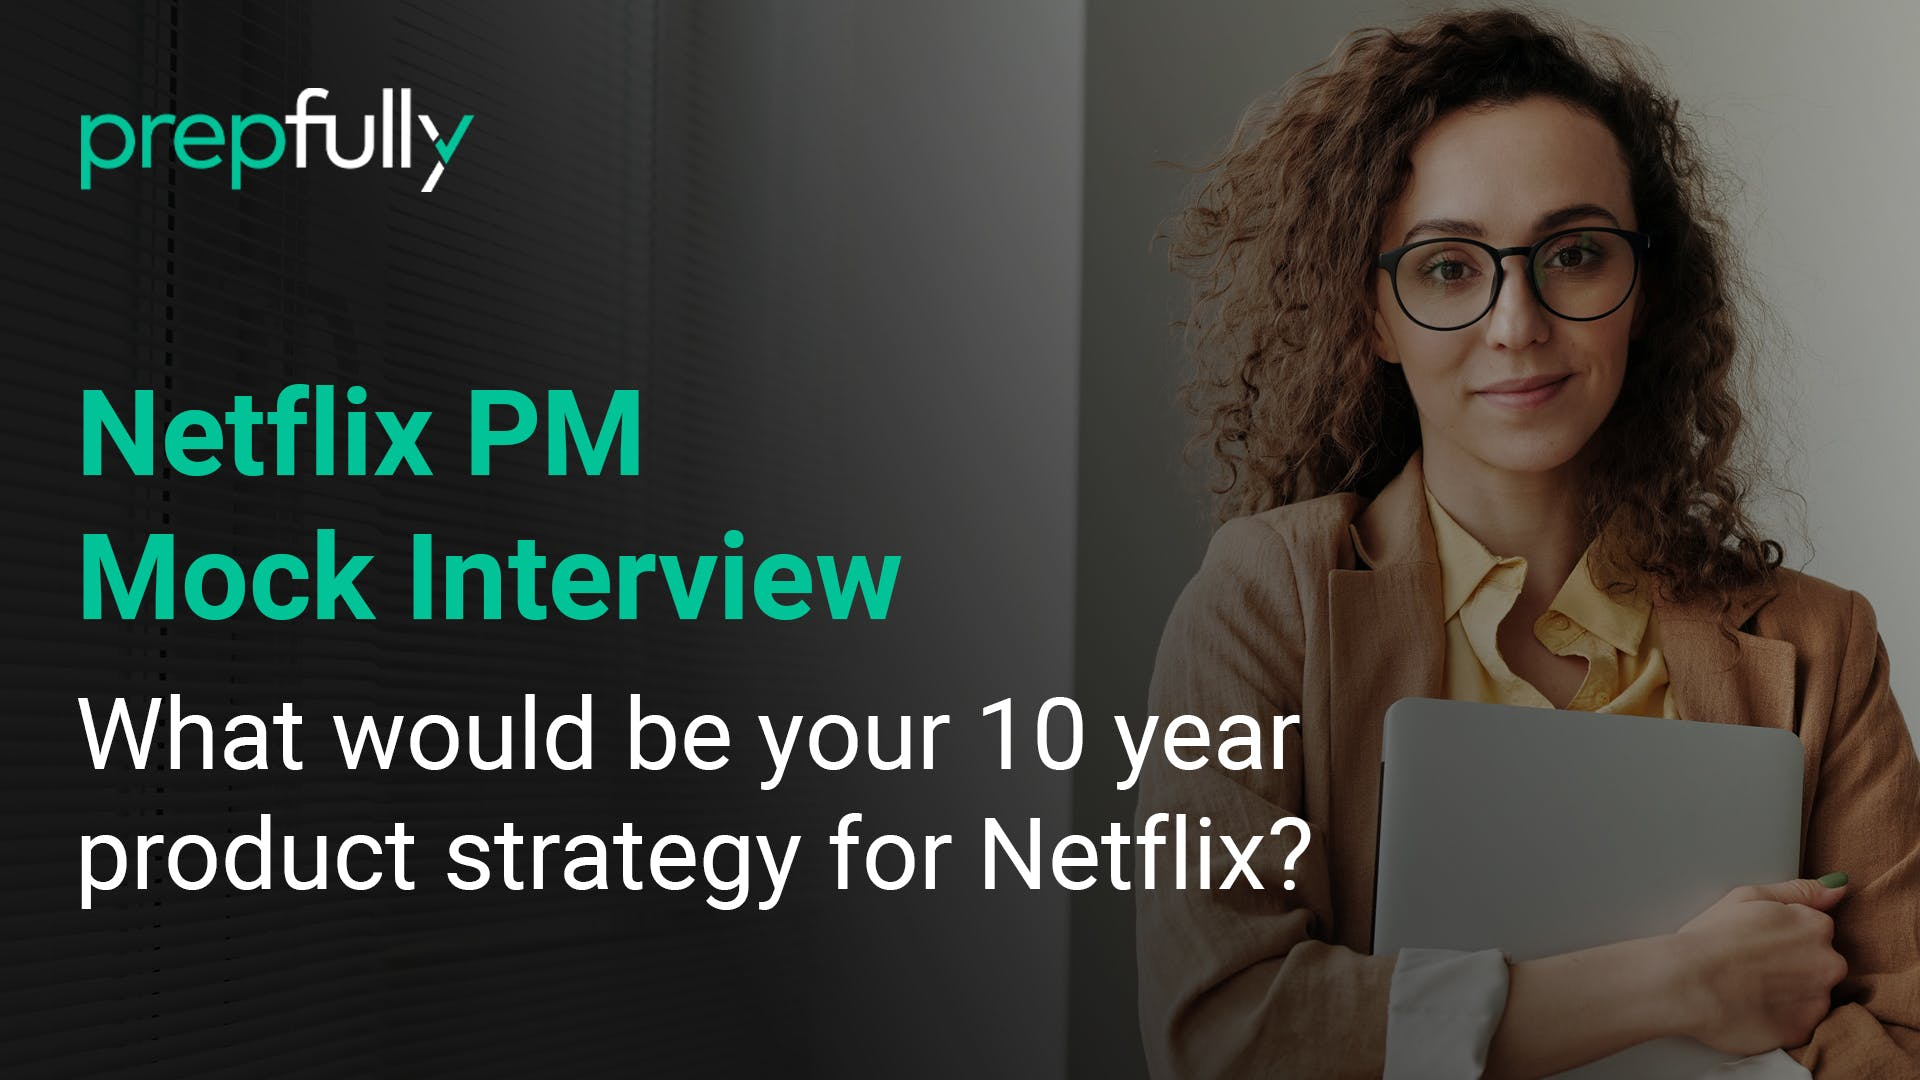 Netflix-PM-mock-interview-what-would-be-your-10year-product-strategy-for-netflix